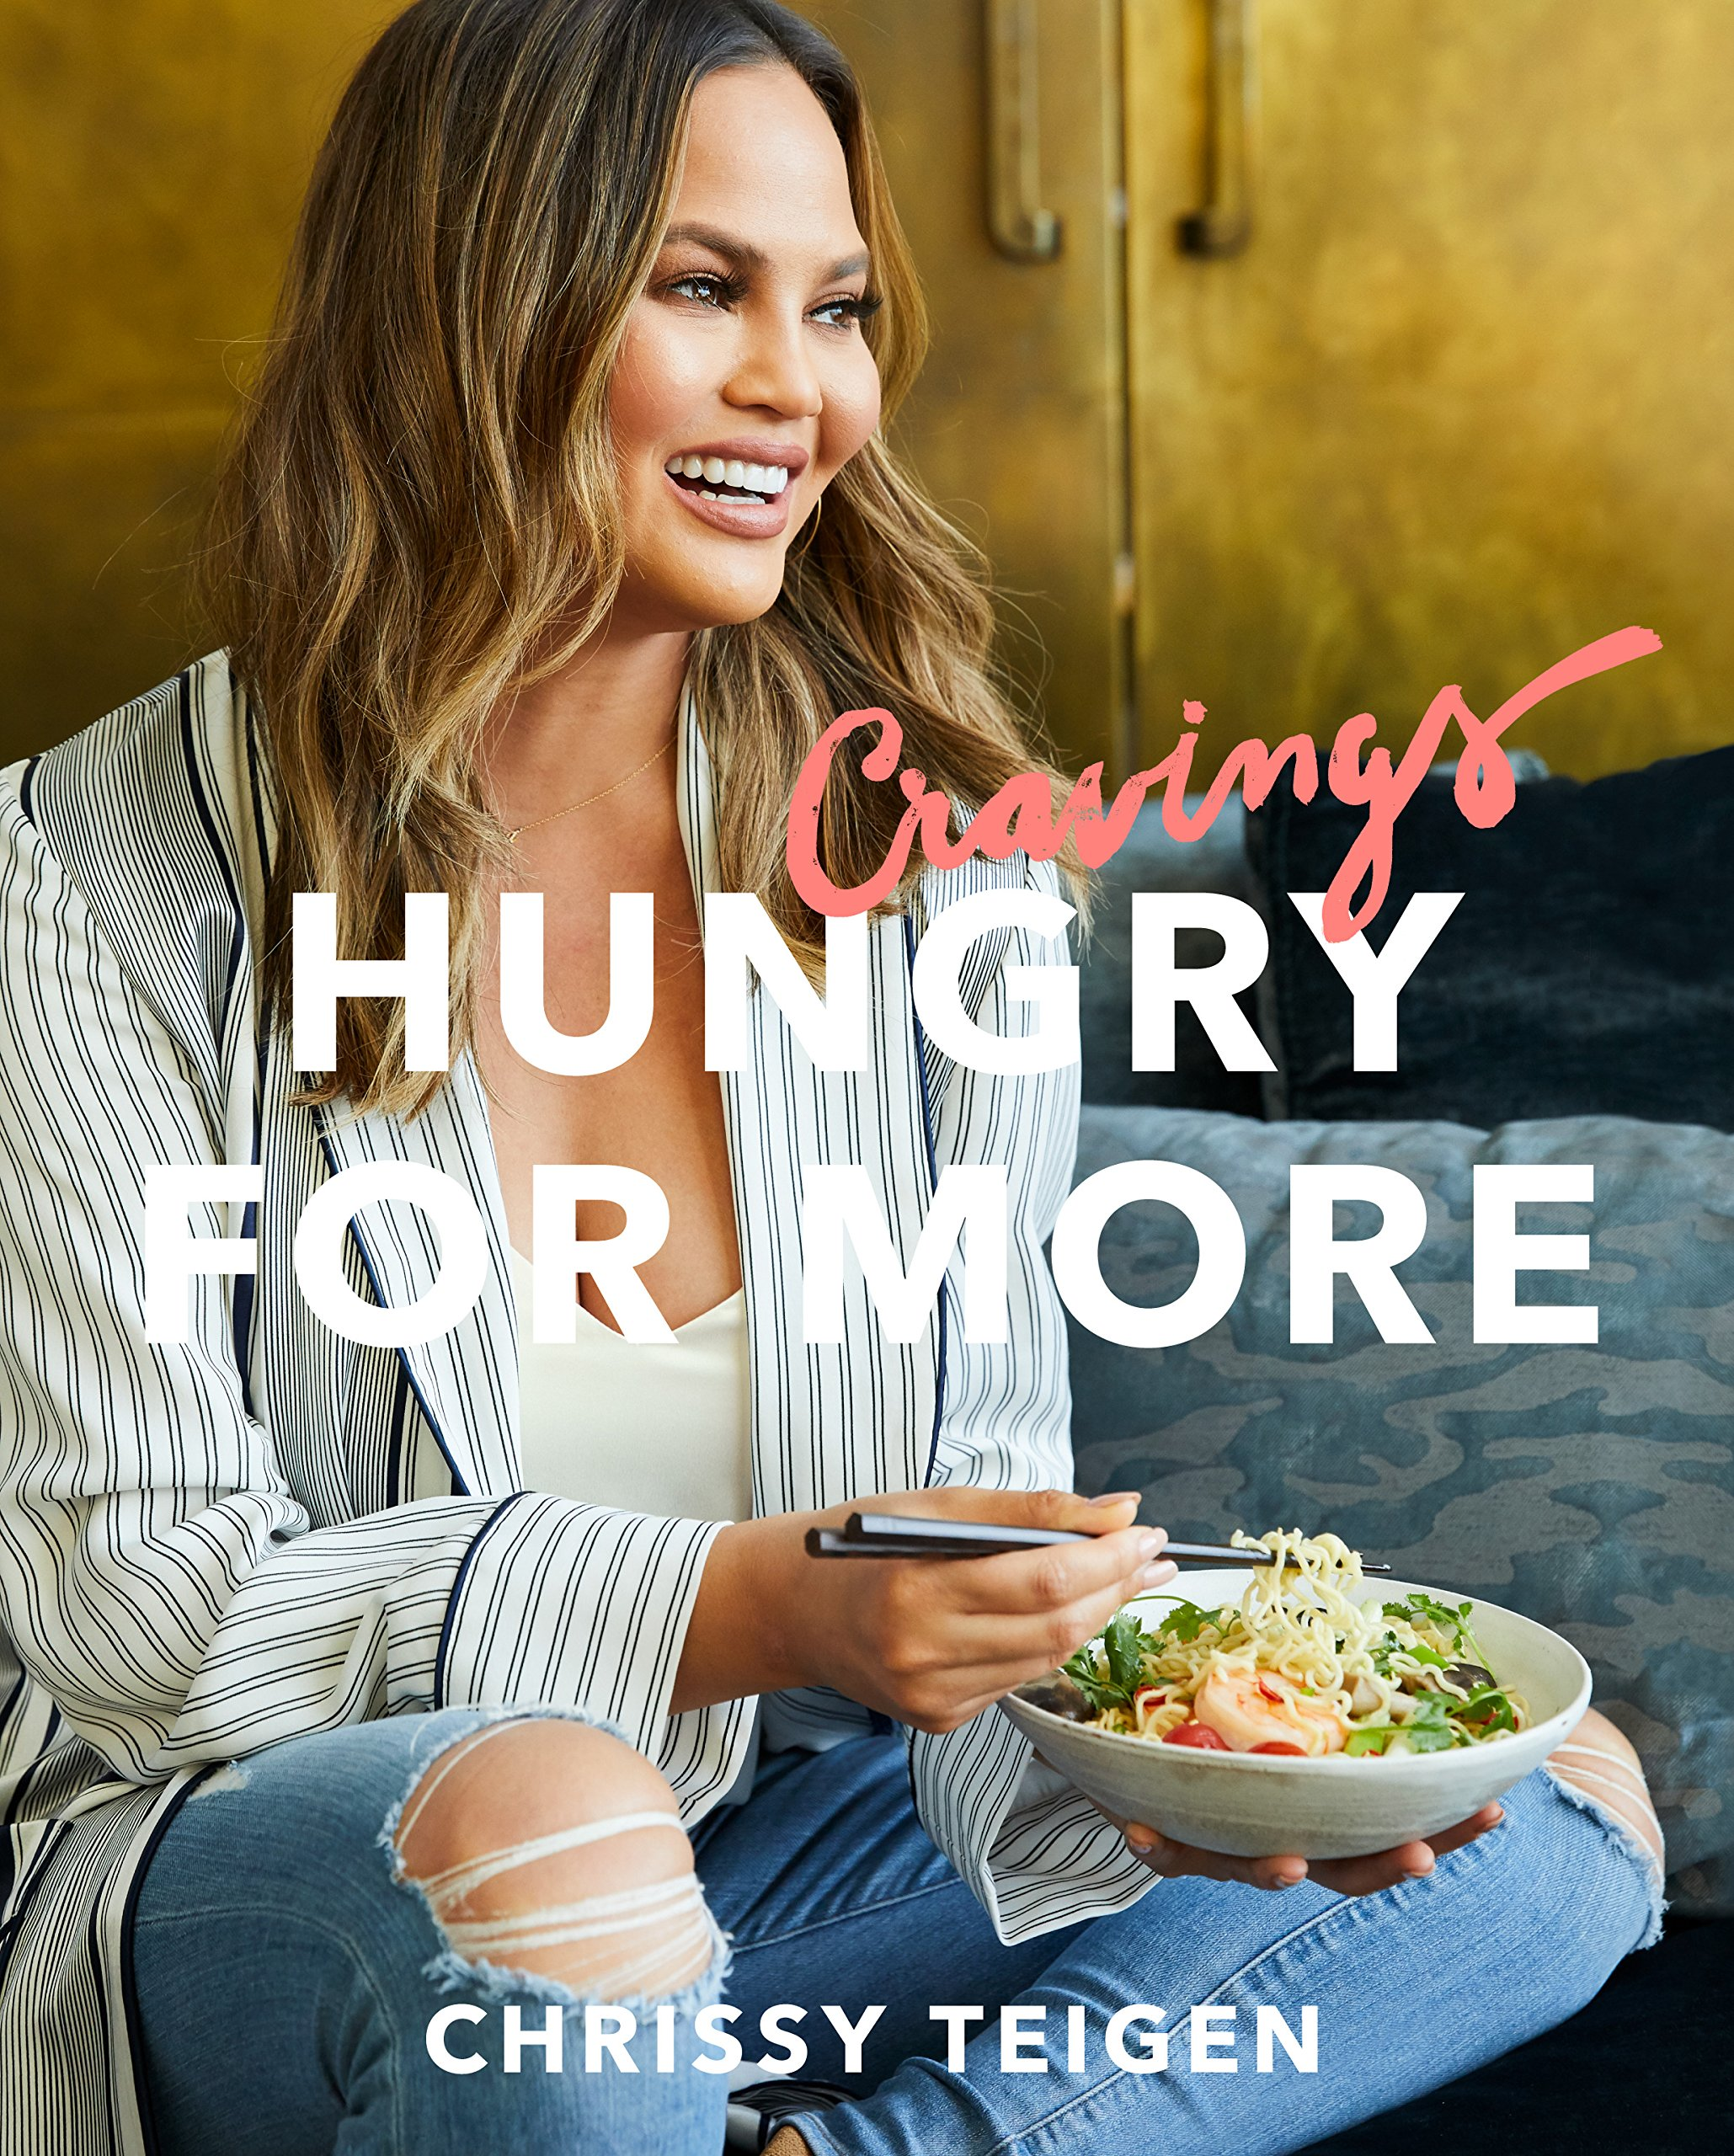 Cravings: Hungry for More cookbook with Chrissy Teigen on the cover eating noodles